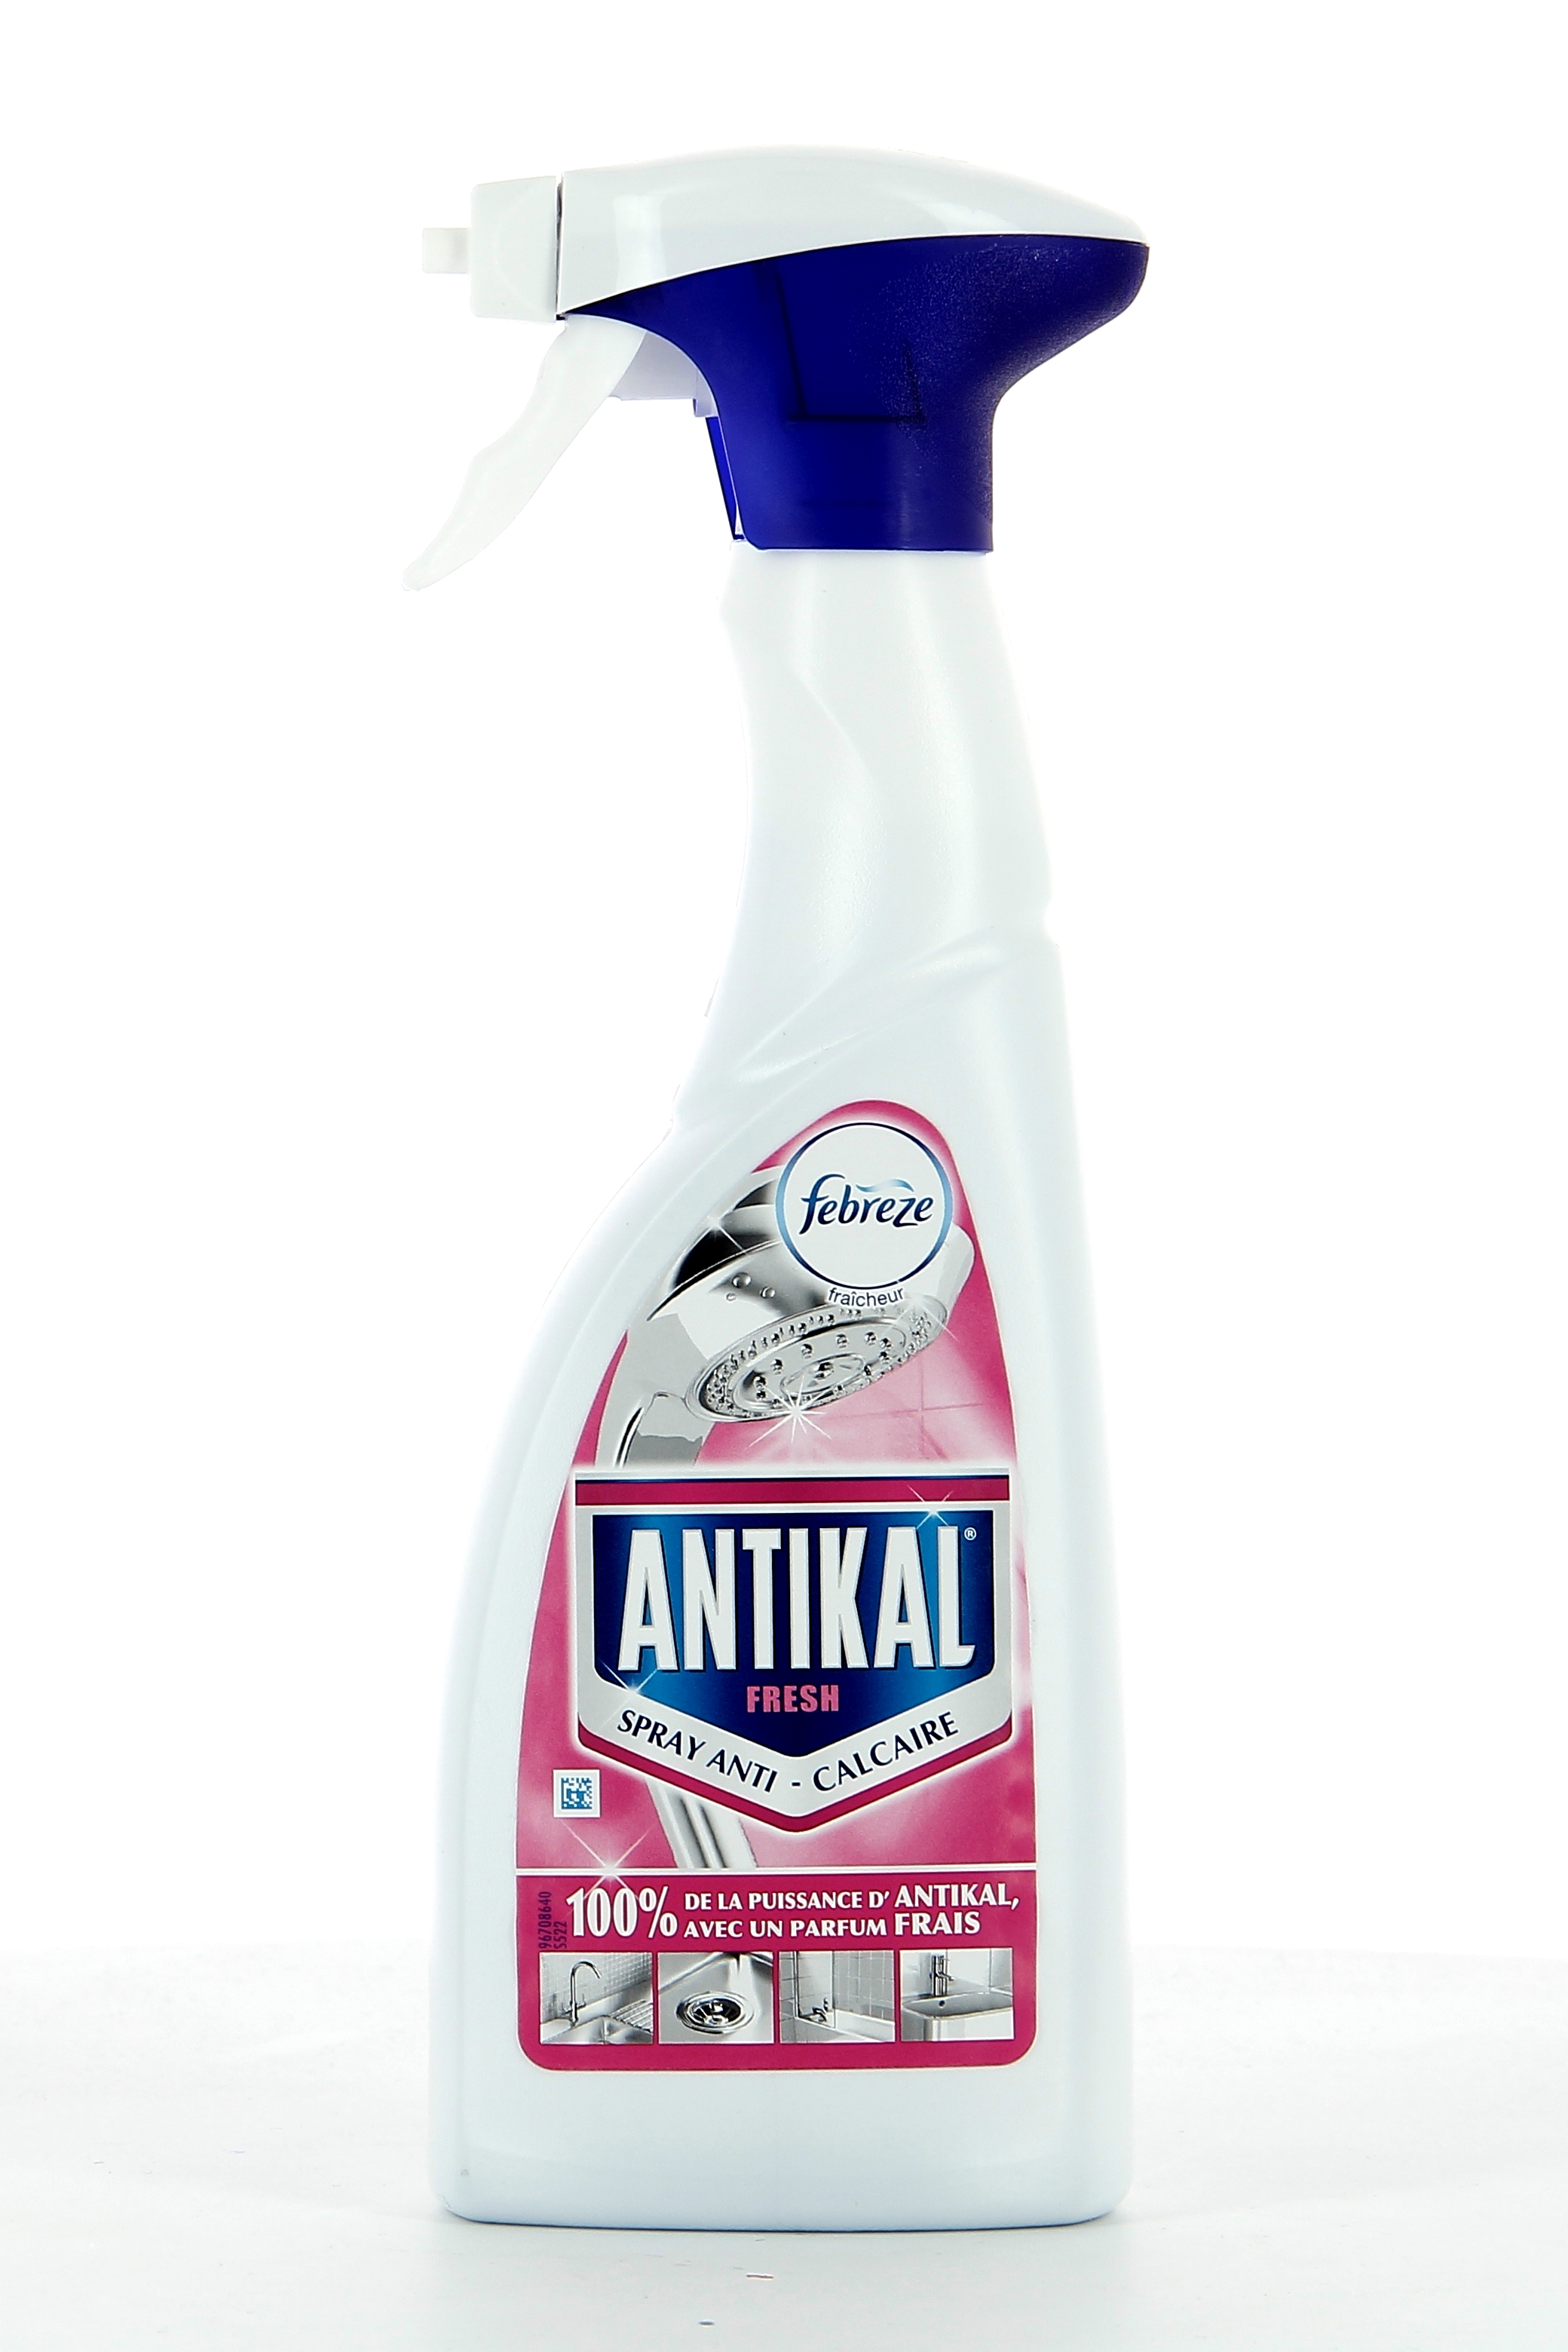 Antikal Spray Anti Calcaire 500ml Febreze Fresh Wc Salle De Bain